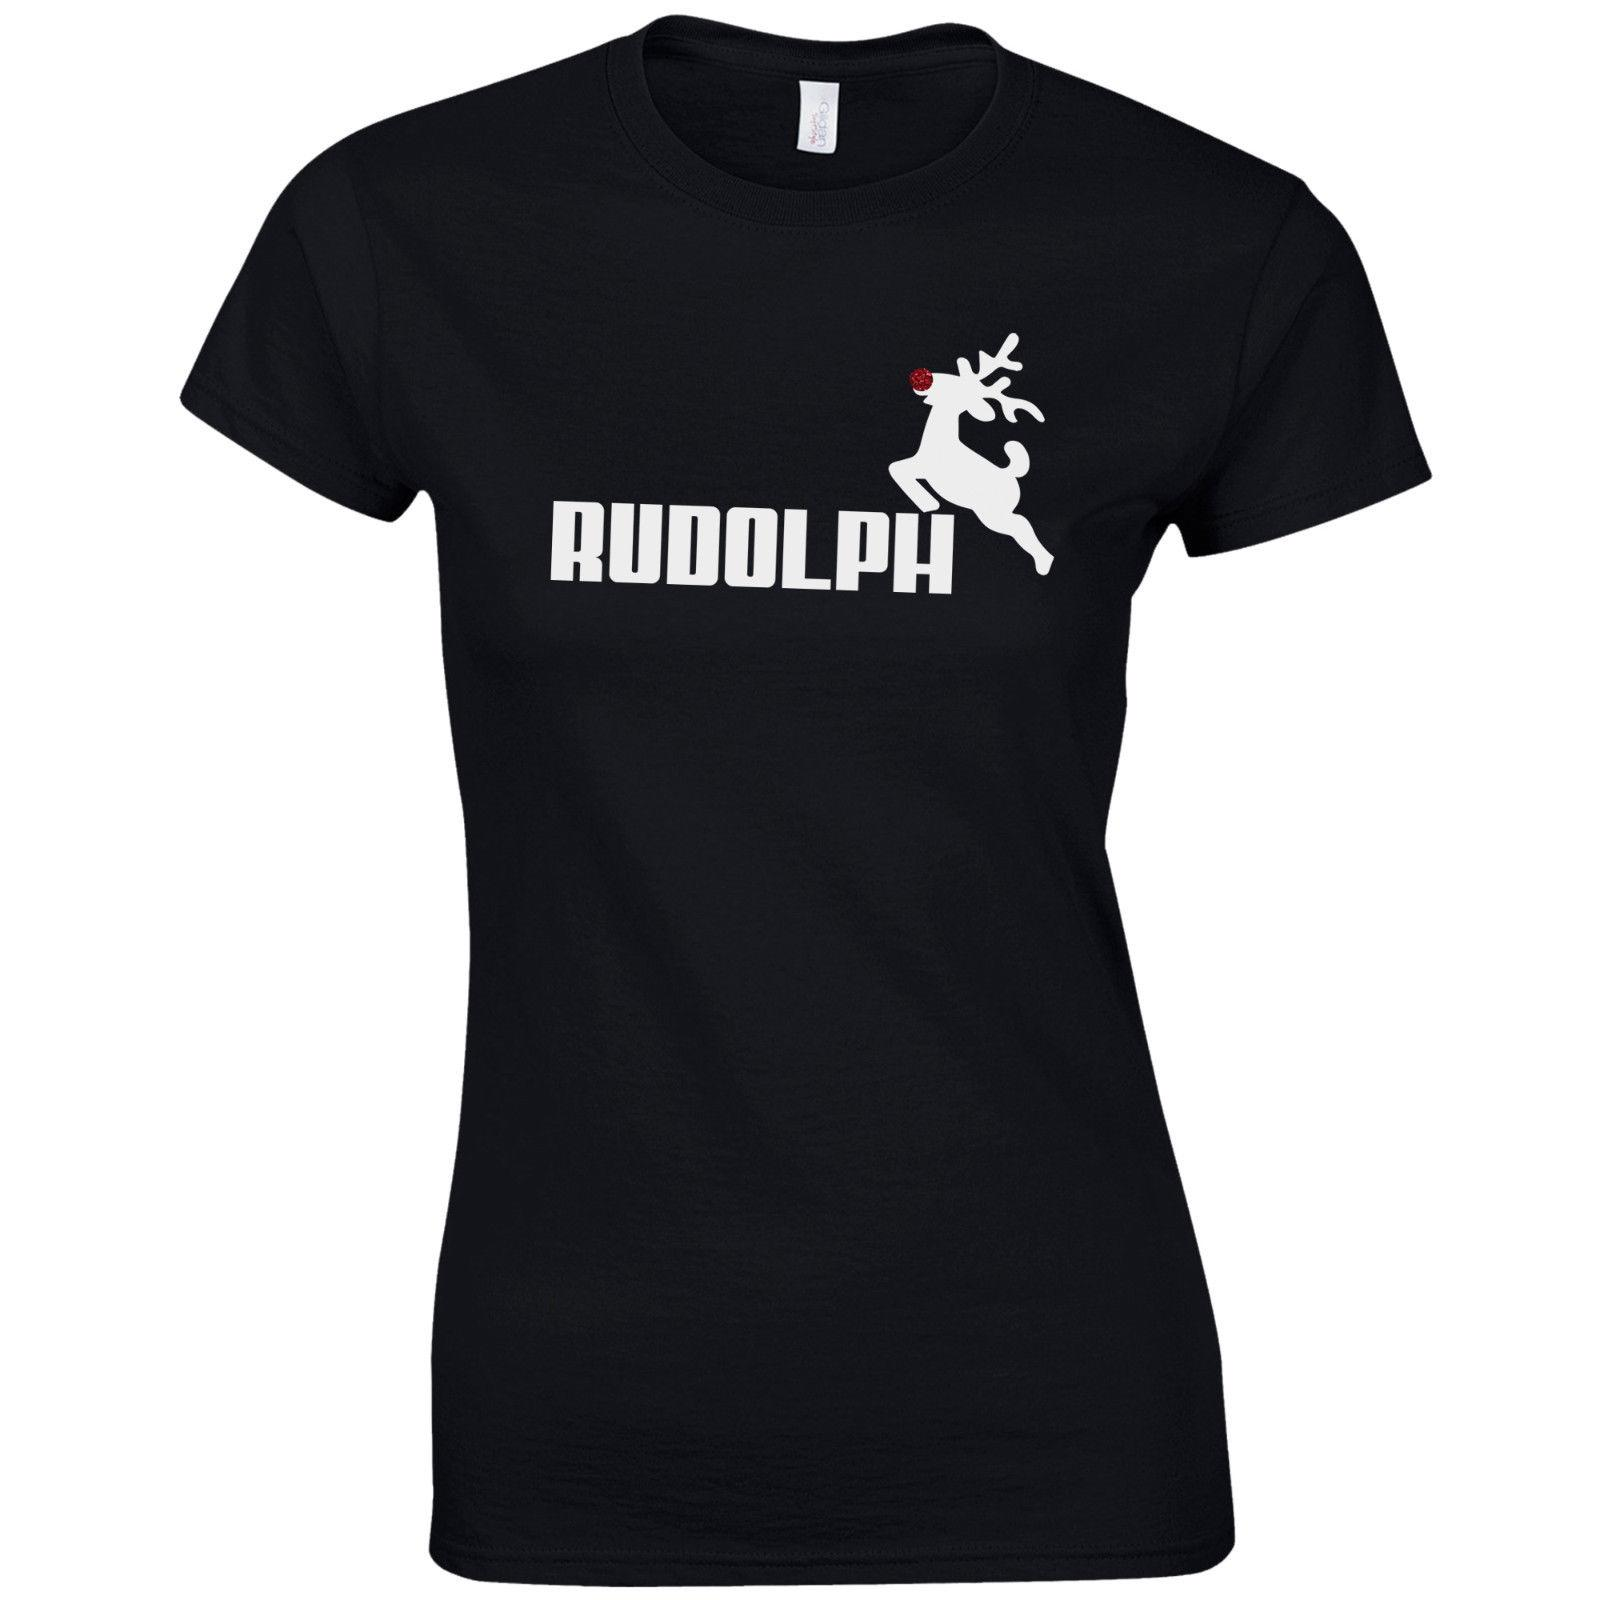 d126f0792f Women s Tee Rudolph Ladies Fitted T Shirt - Christmas Reindeer Rudolf  Glitter Nose Gift Top Fashion Brand Hipster Slim Top